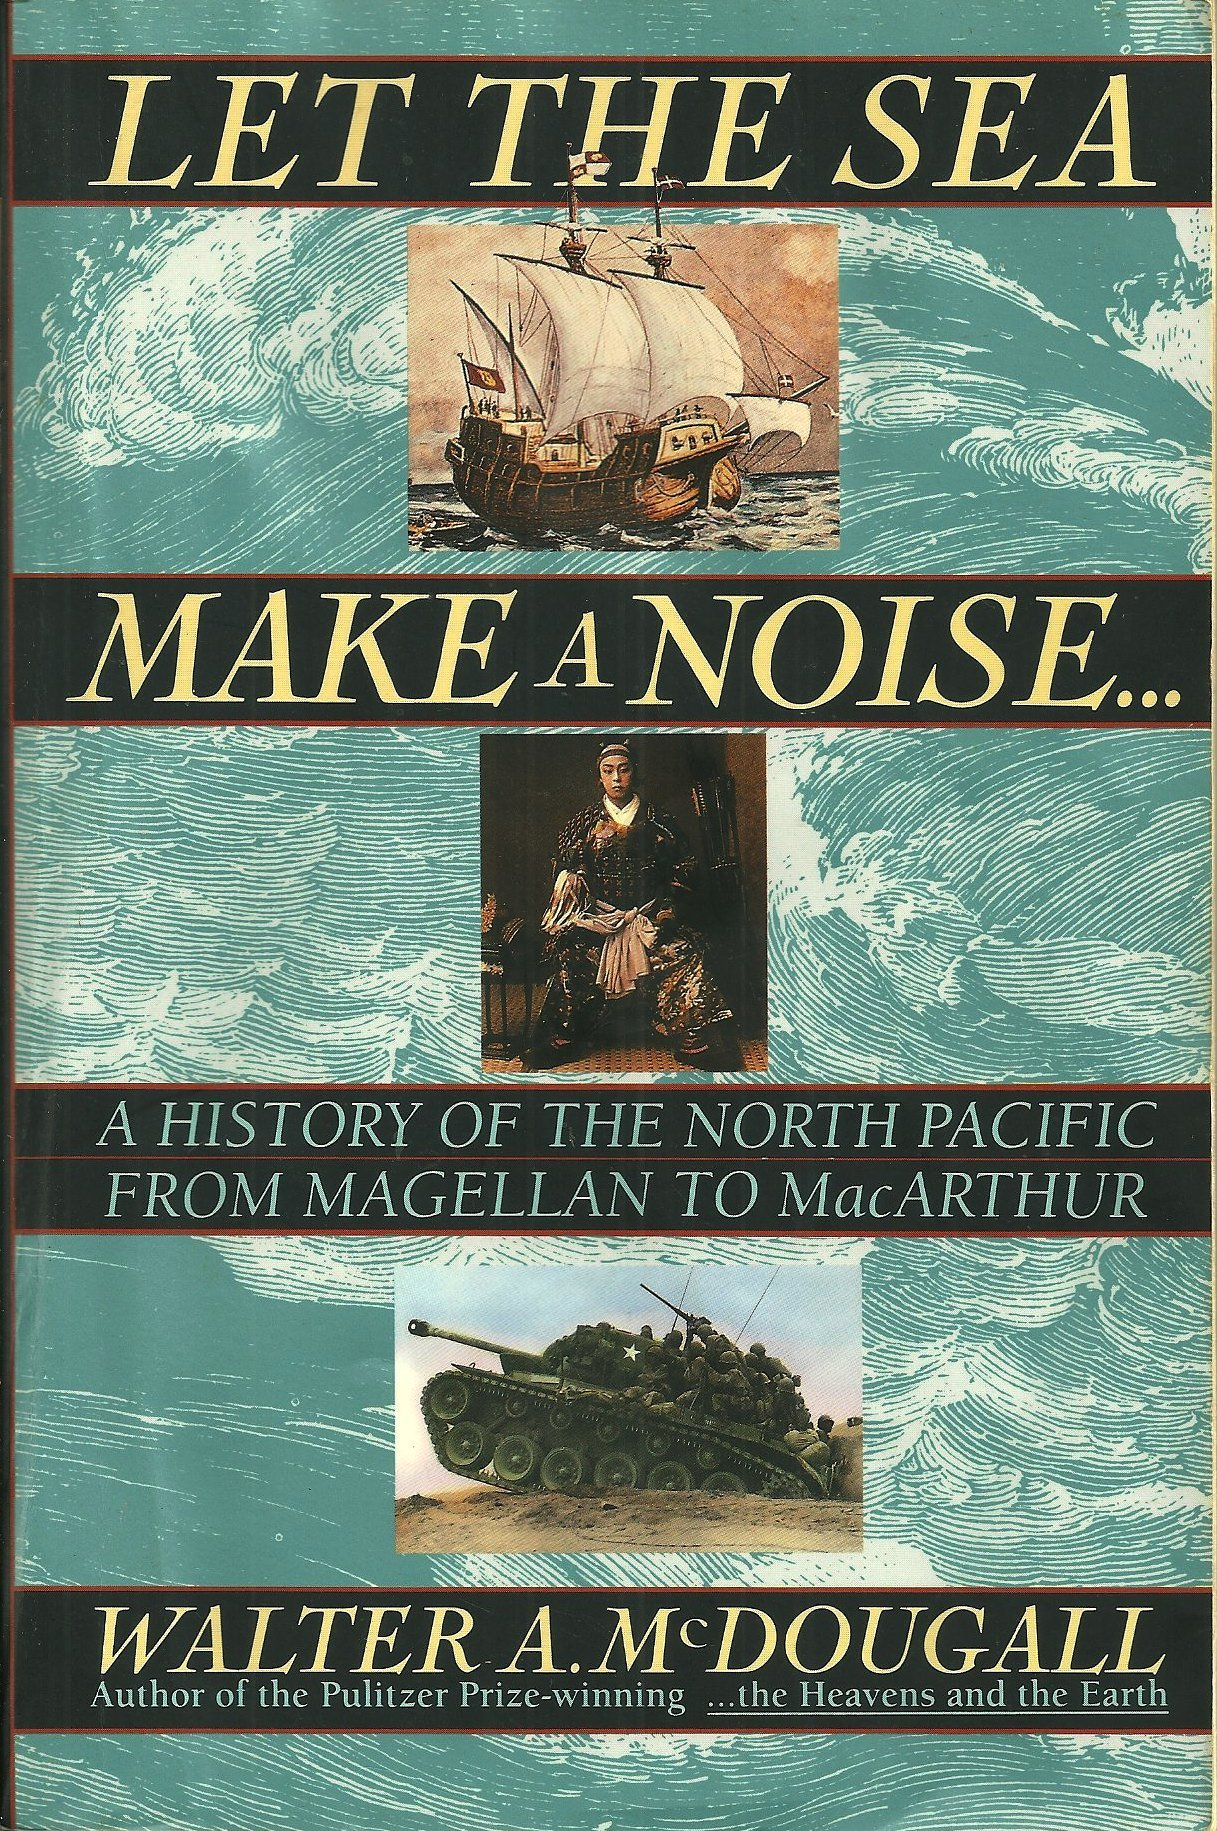 Let the Sea Make a Noise...: A History of the North Pacific from Magellan to Macarthur, McDougall, Walter A.